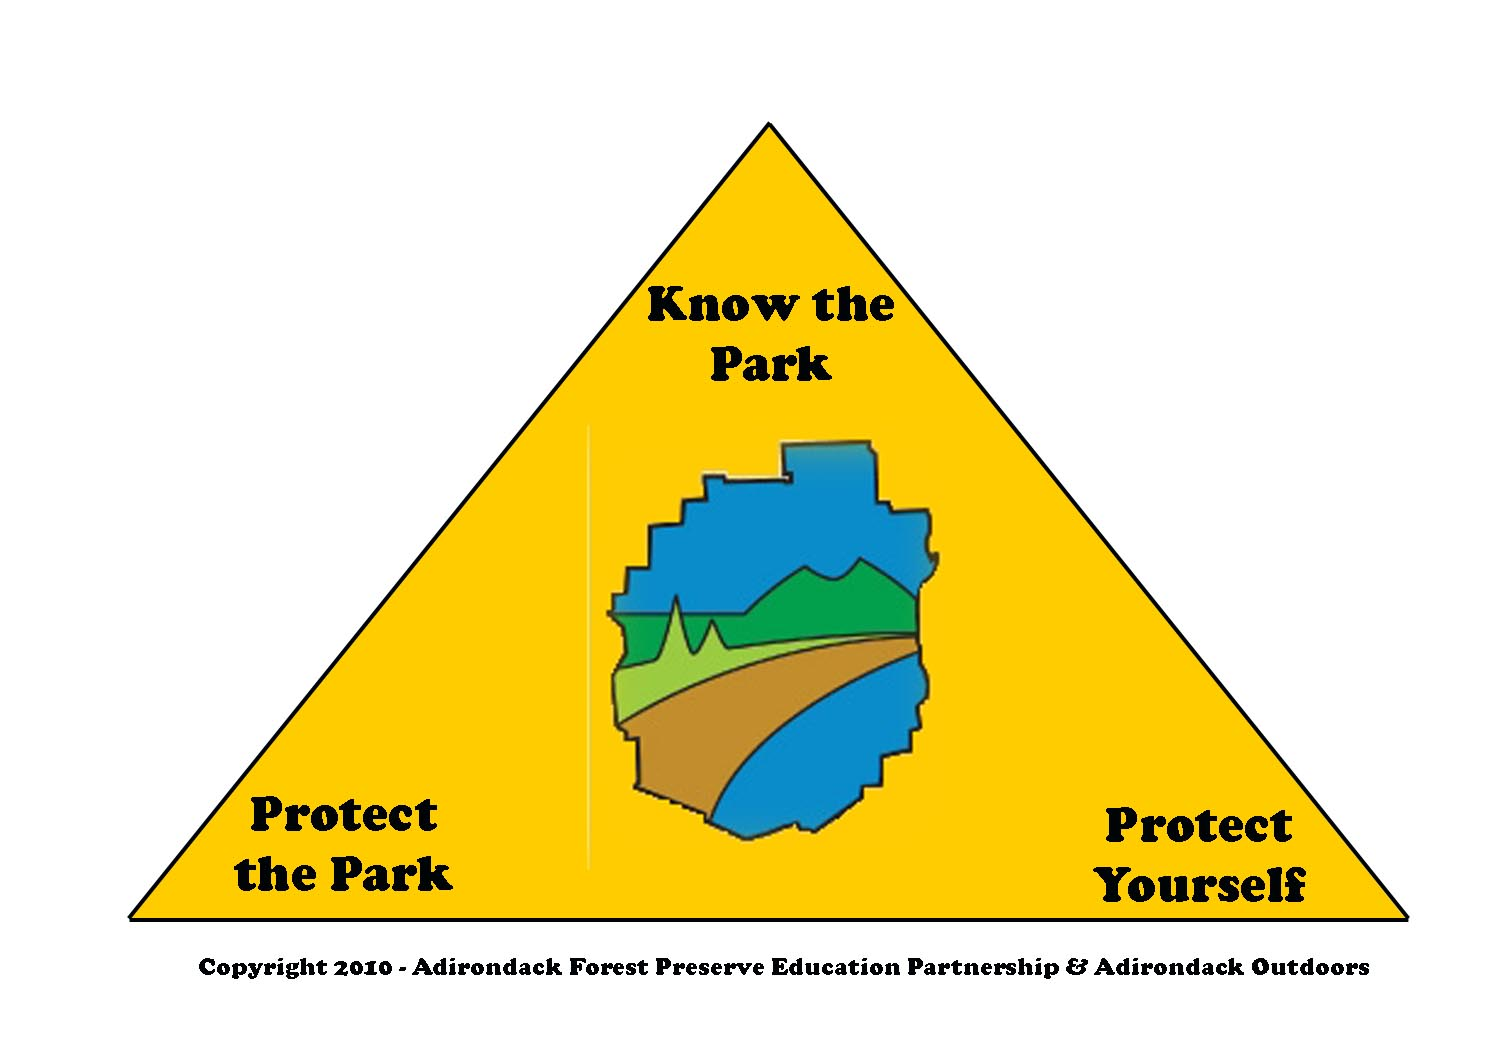 understanding forest rangers and ecos the adirondack almanack this guest essay was contributed by the adirondack forest preserve education partnership a coalition of adirondack organizations building on the leave no